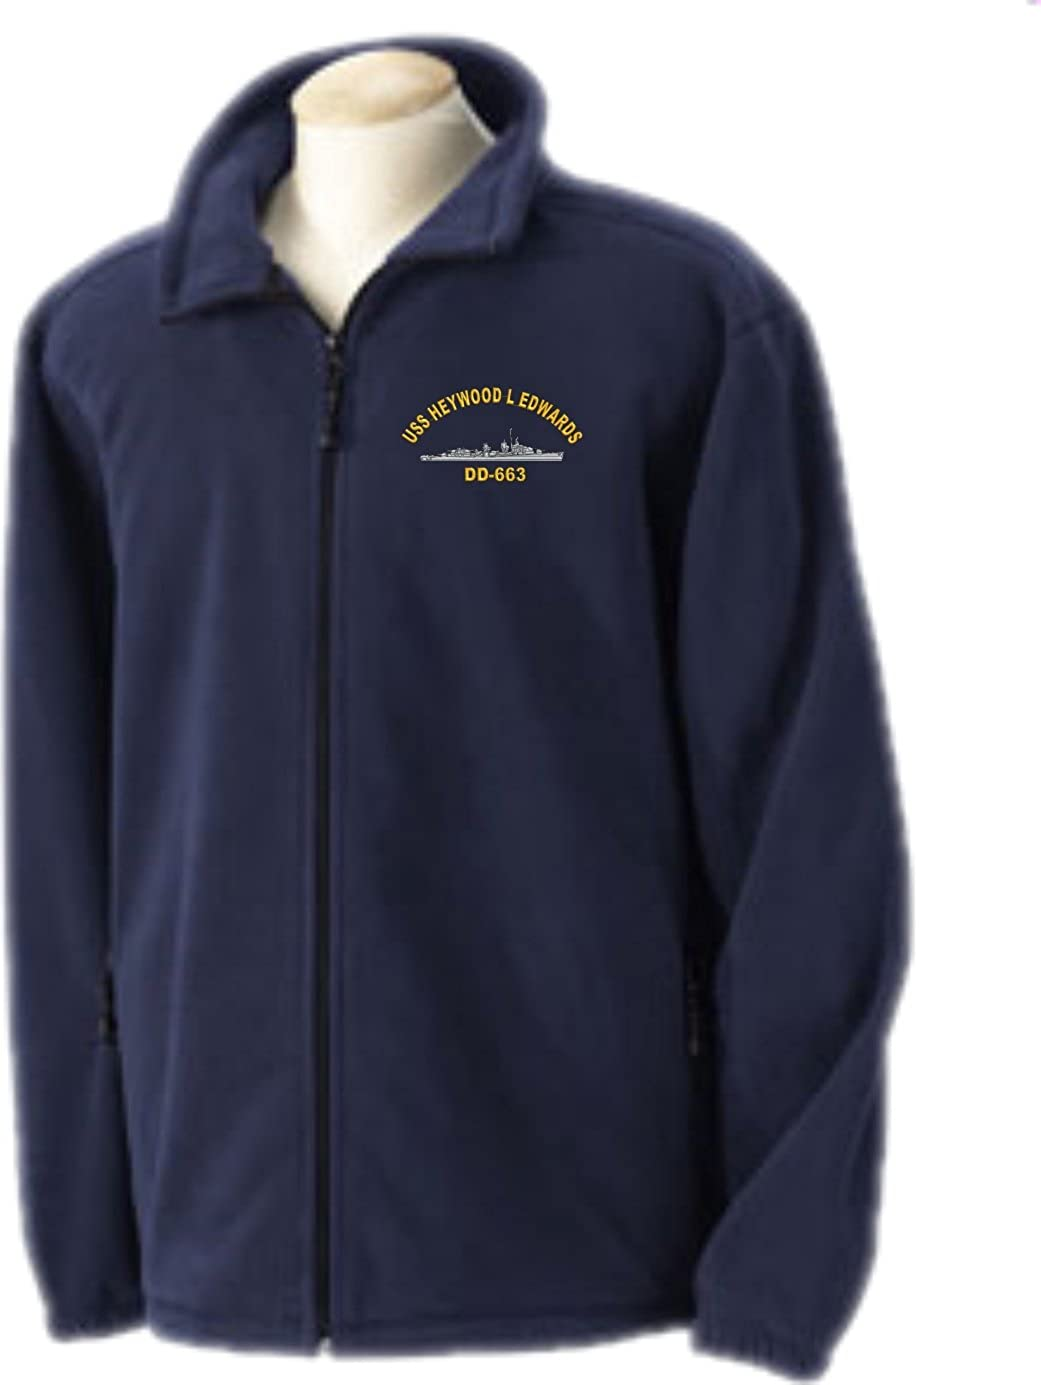 USS Heywood L Edwards DD-663 Embroidered Fleece Jacket Sizes Small-4X